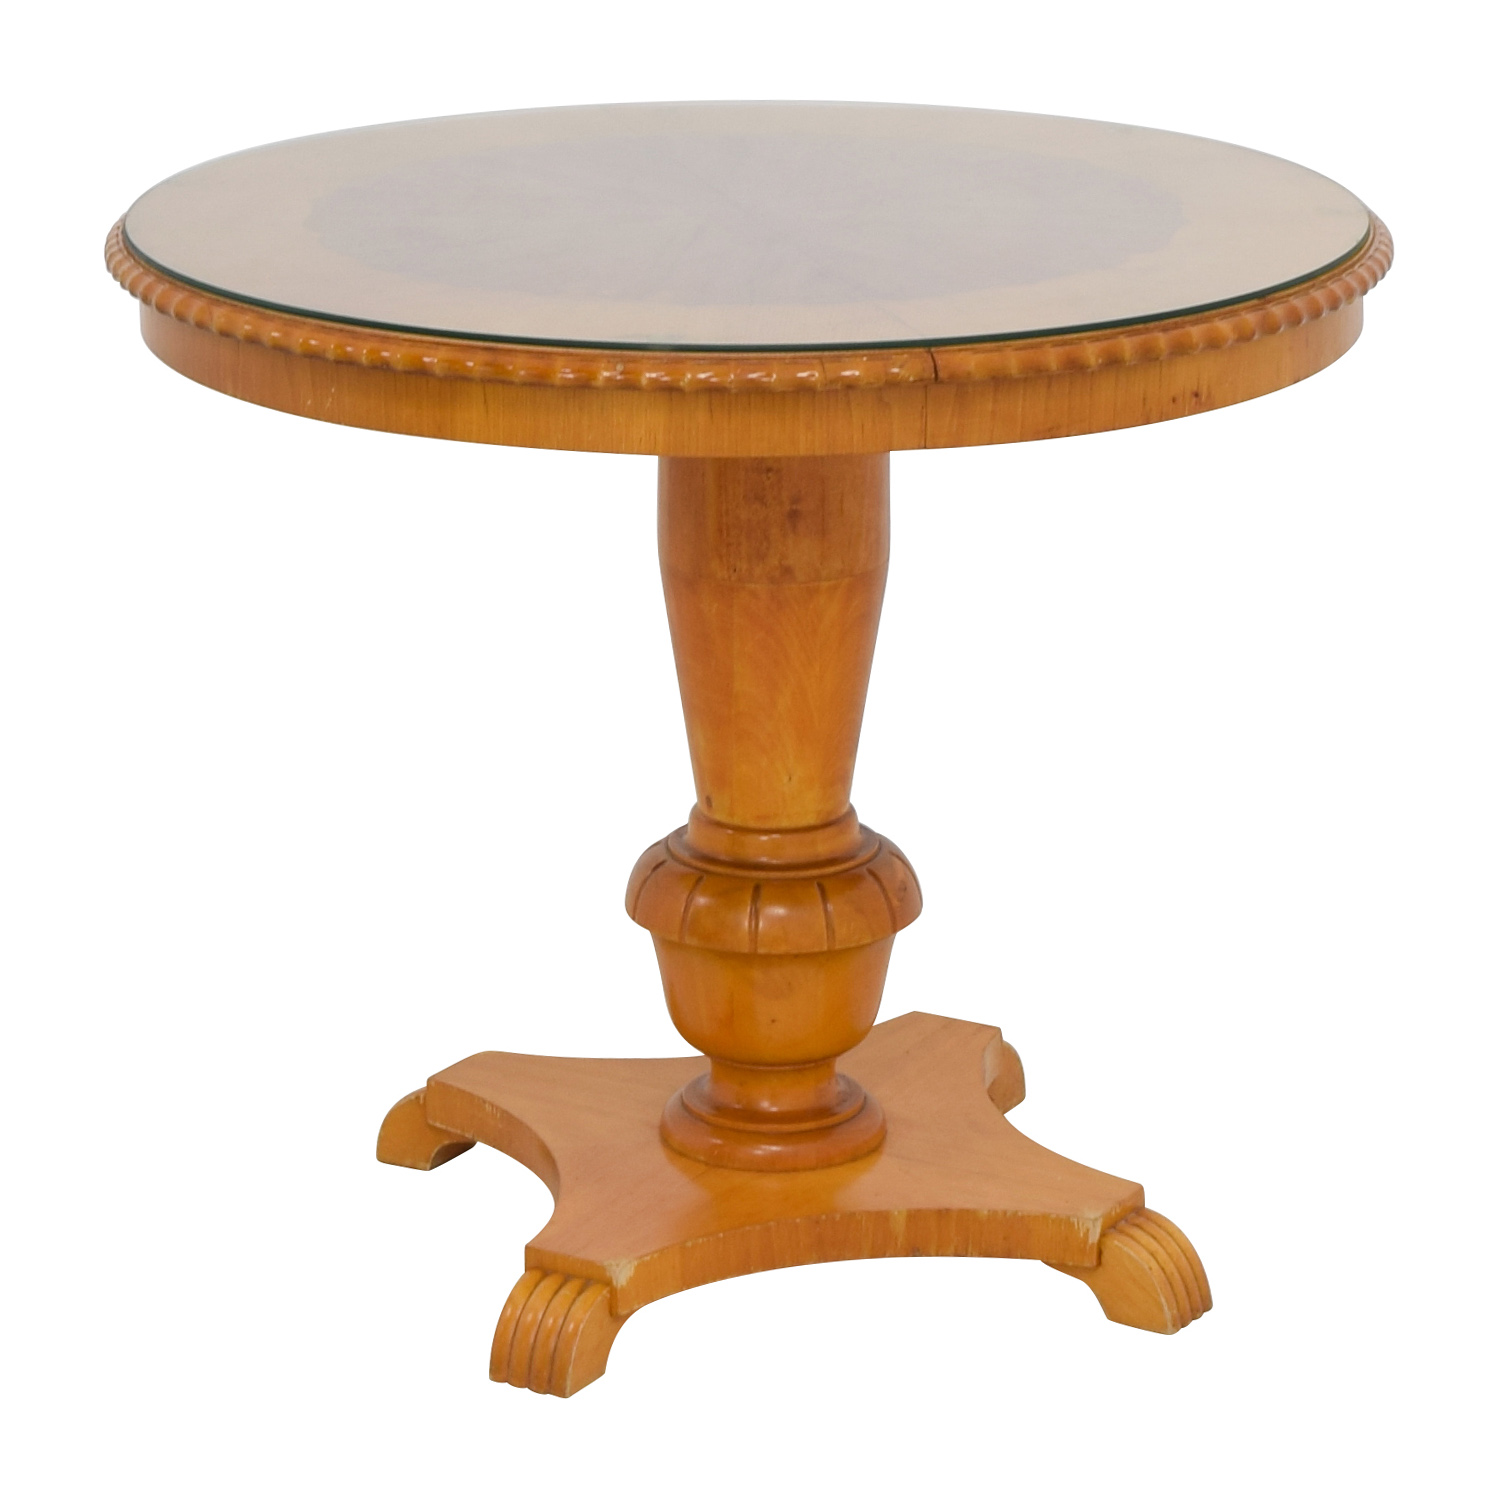 86 off antique round wood dining table with glass top for Round glass top dining table